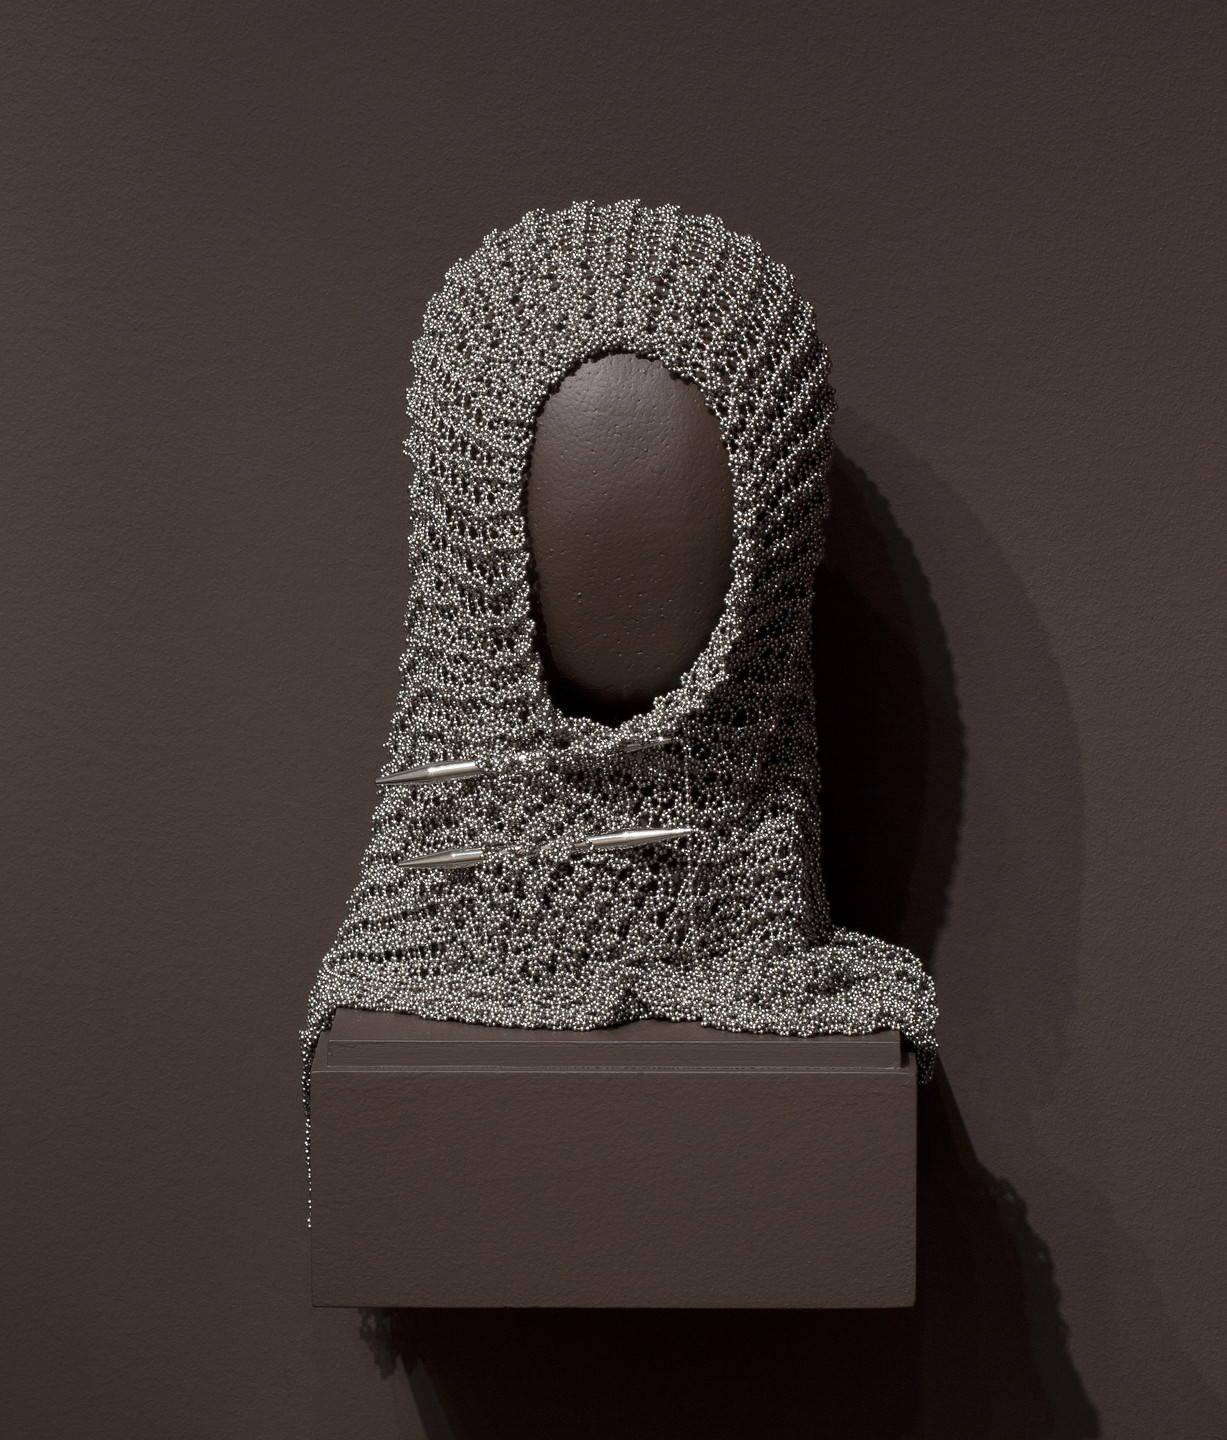 Galya Rosenfeld, Bezalel Academy of Art and Design. Headscarf. 2003